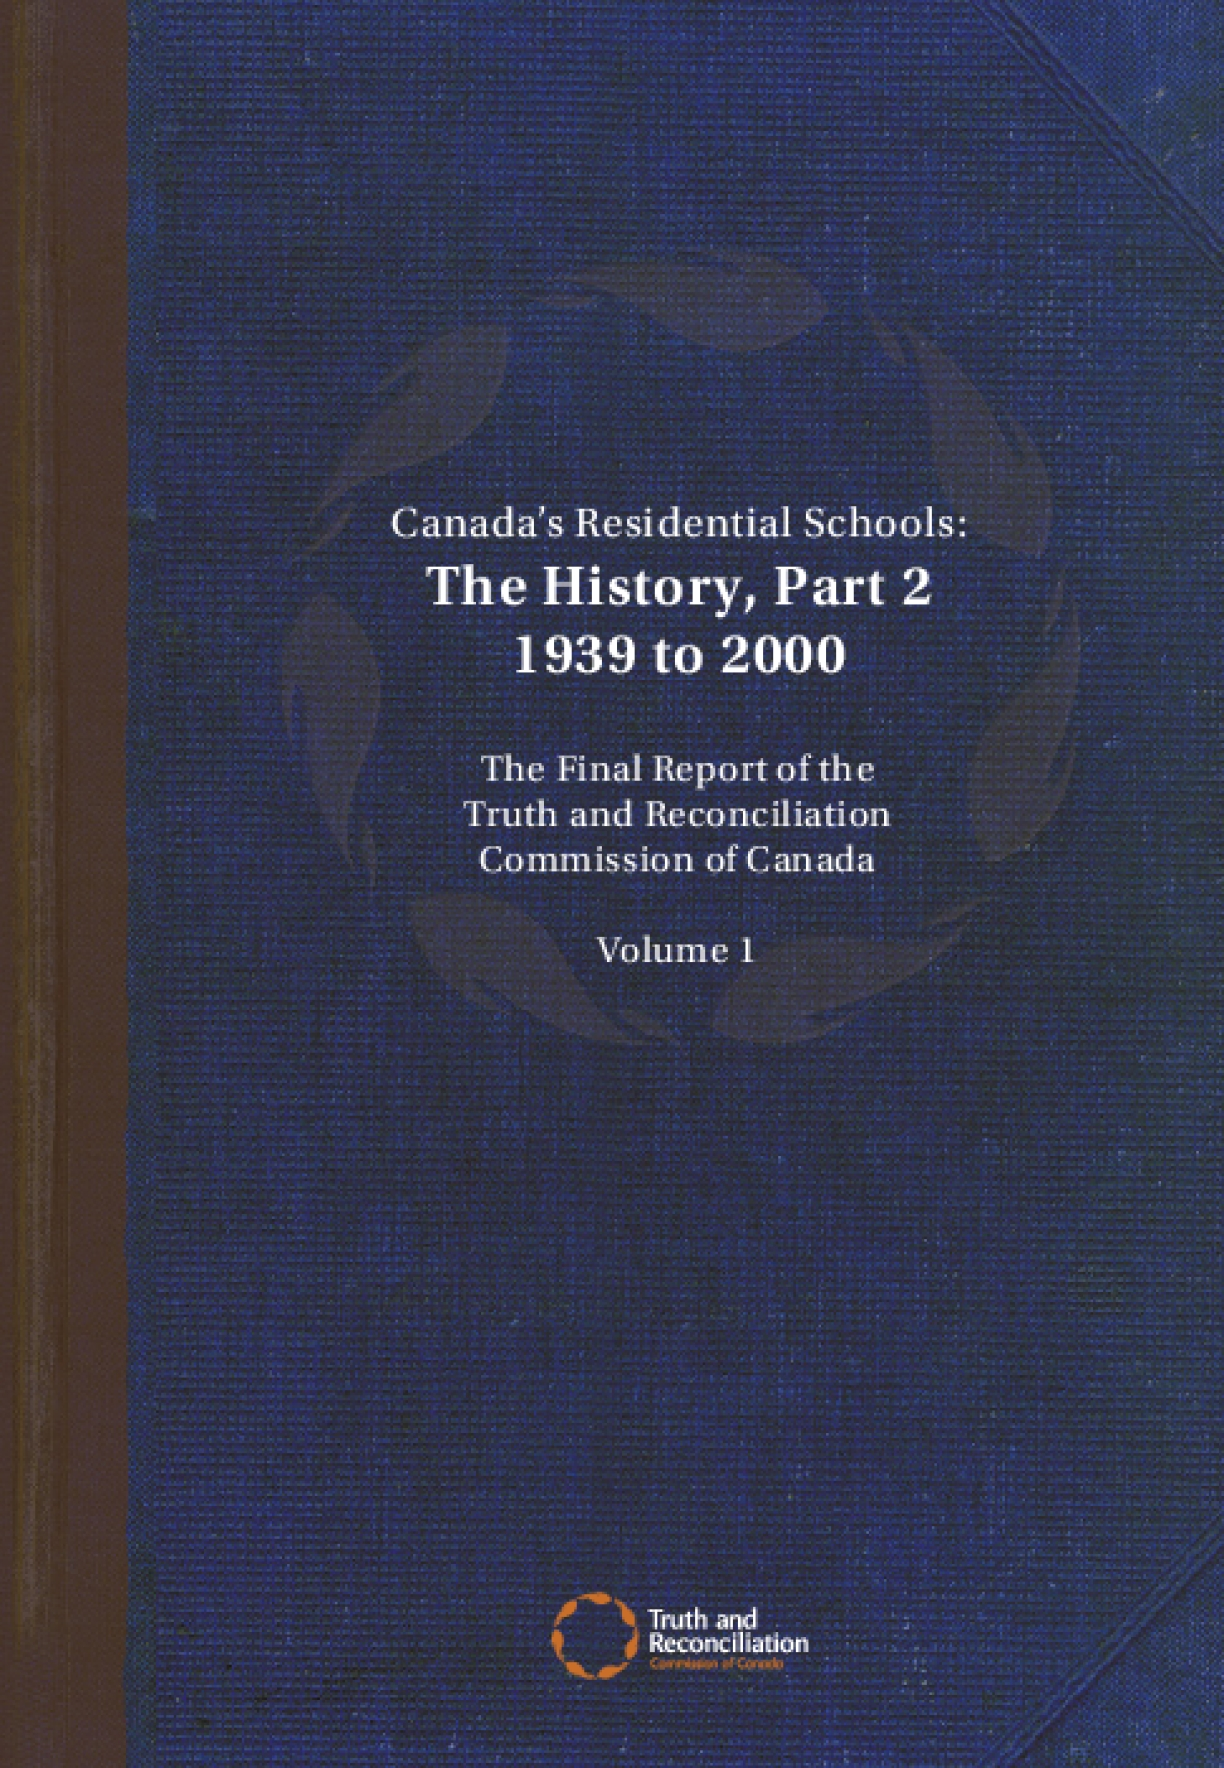 Canada's Residential Schools: The History, Part 2 1939 to 2000